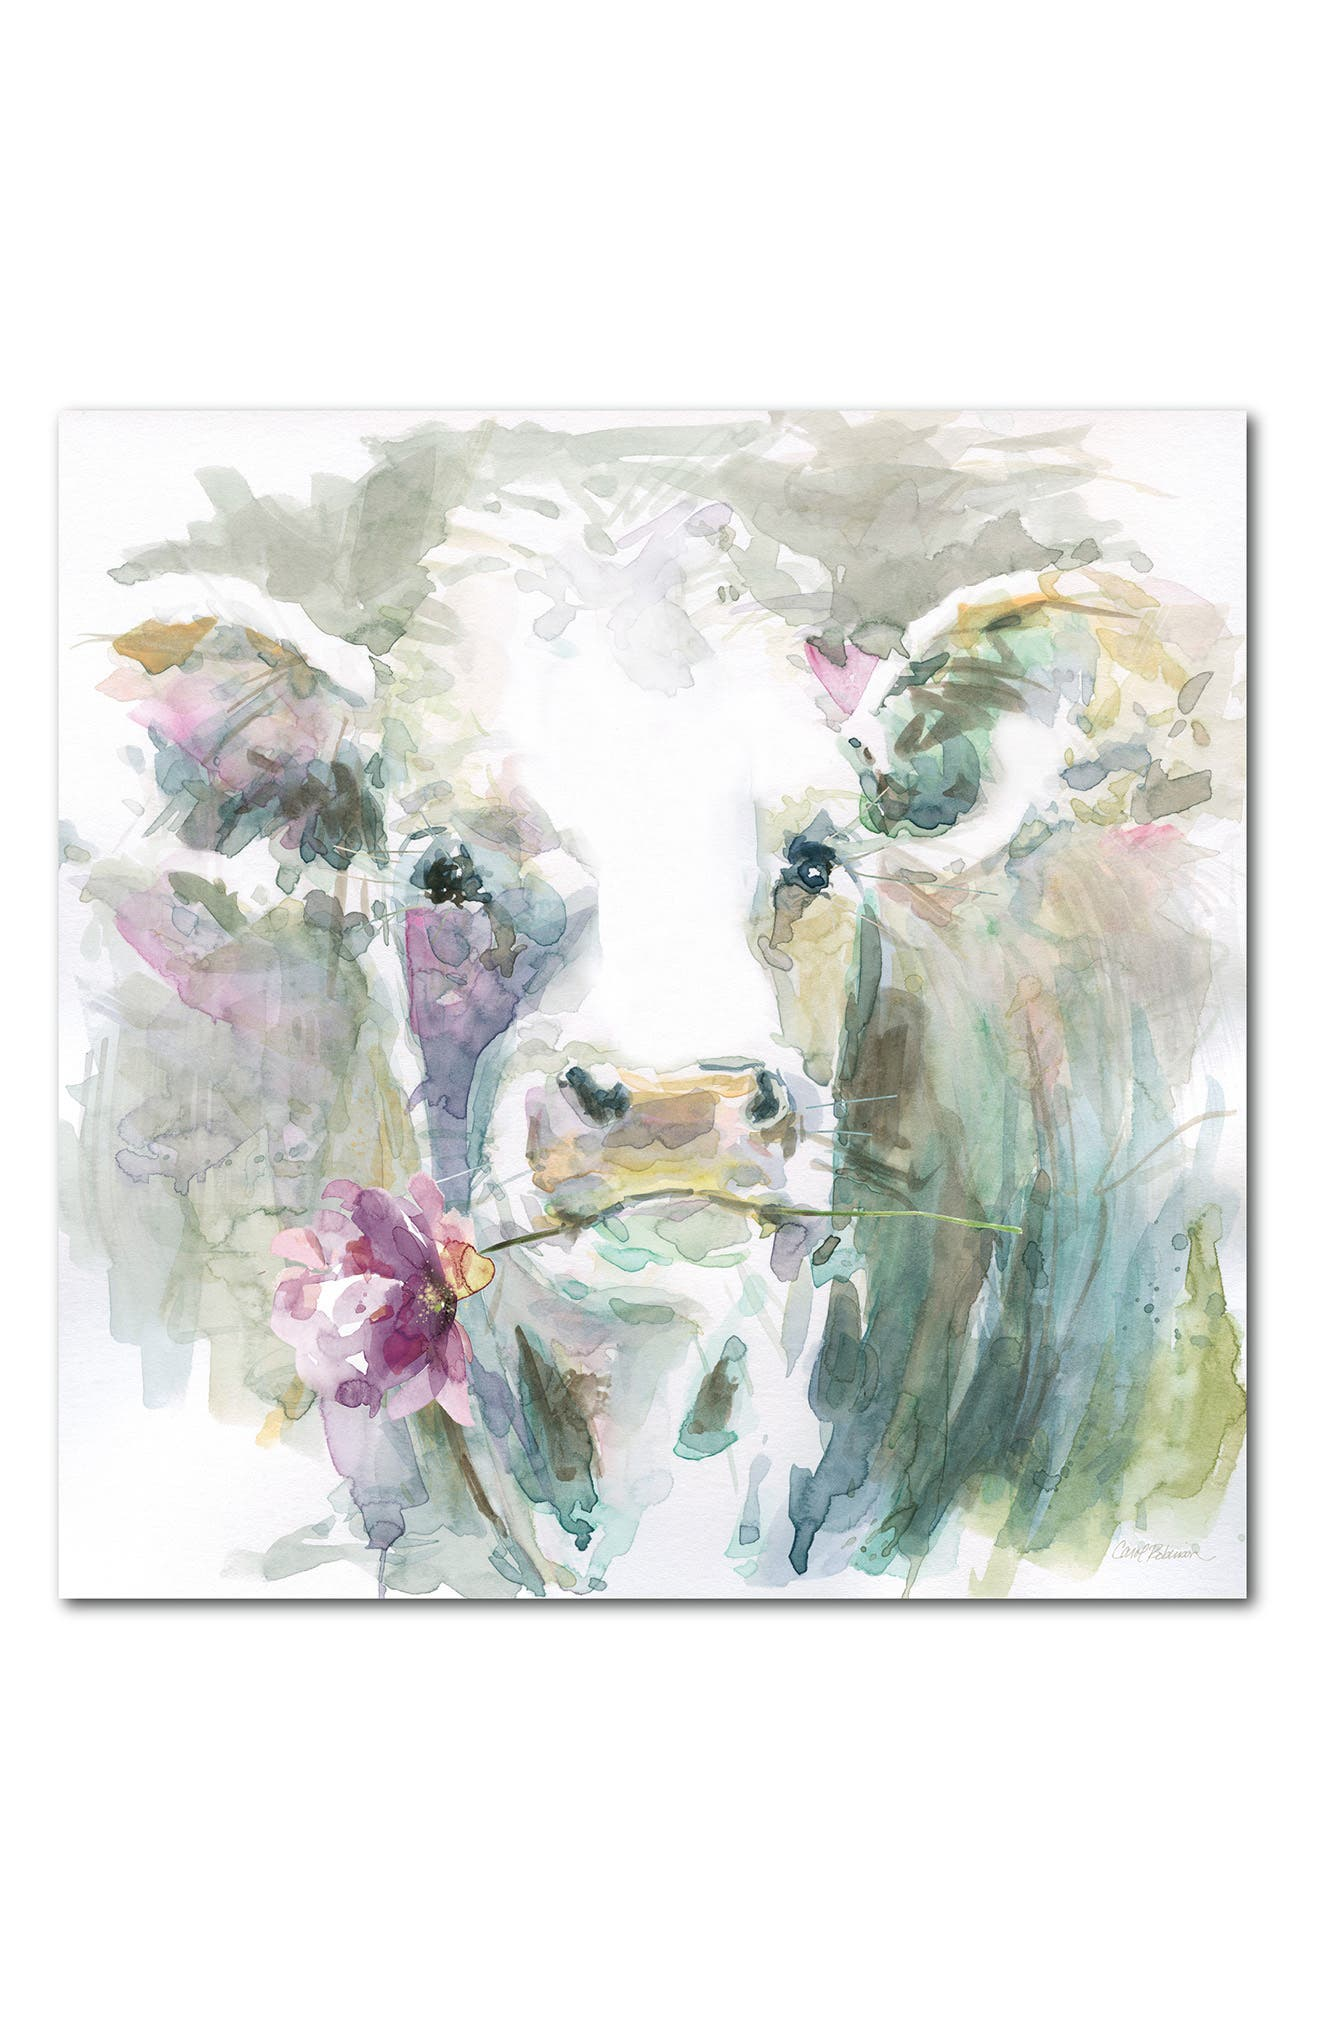 Courtside Market State Fair Gallery-wrapped Canvas Wall Art In Multi Color